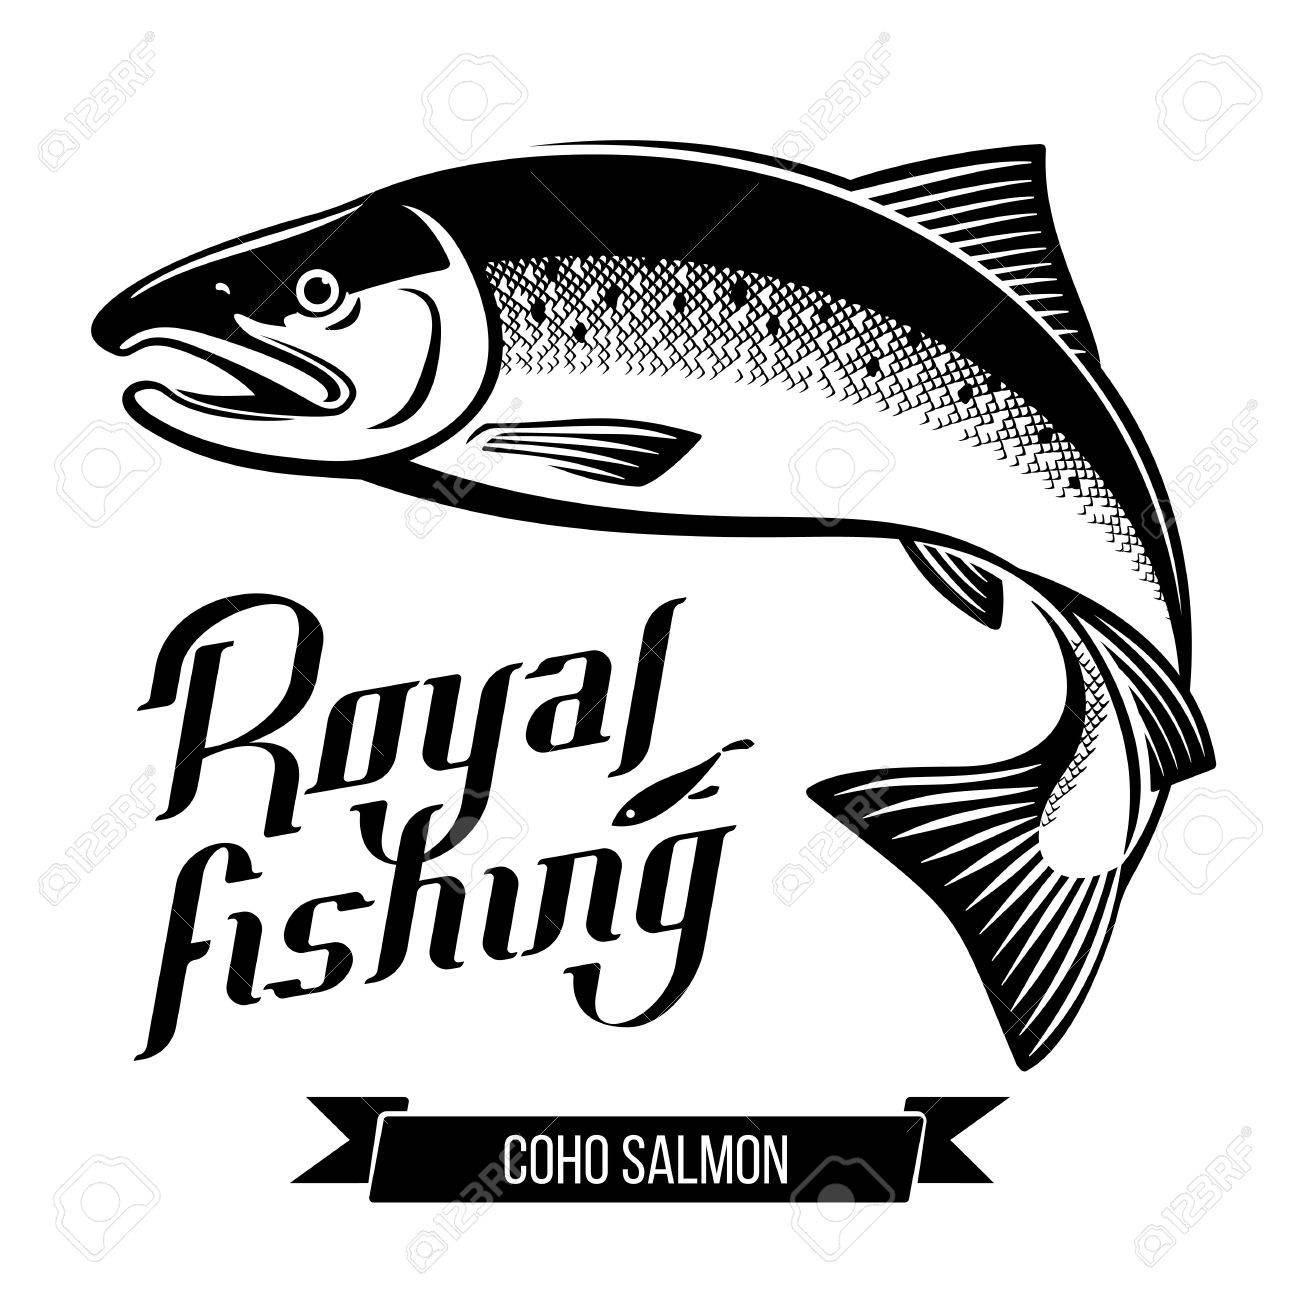 coho salmon fish vector illustration royalty free cliparts vectors rh 123rf com fish vector free fish vector graphic